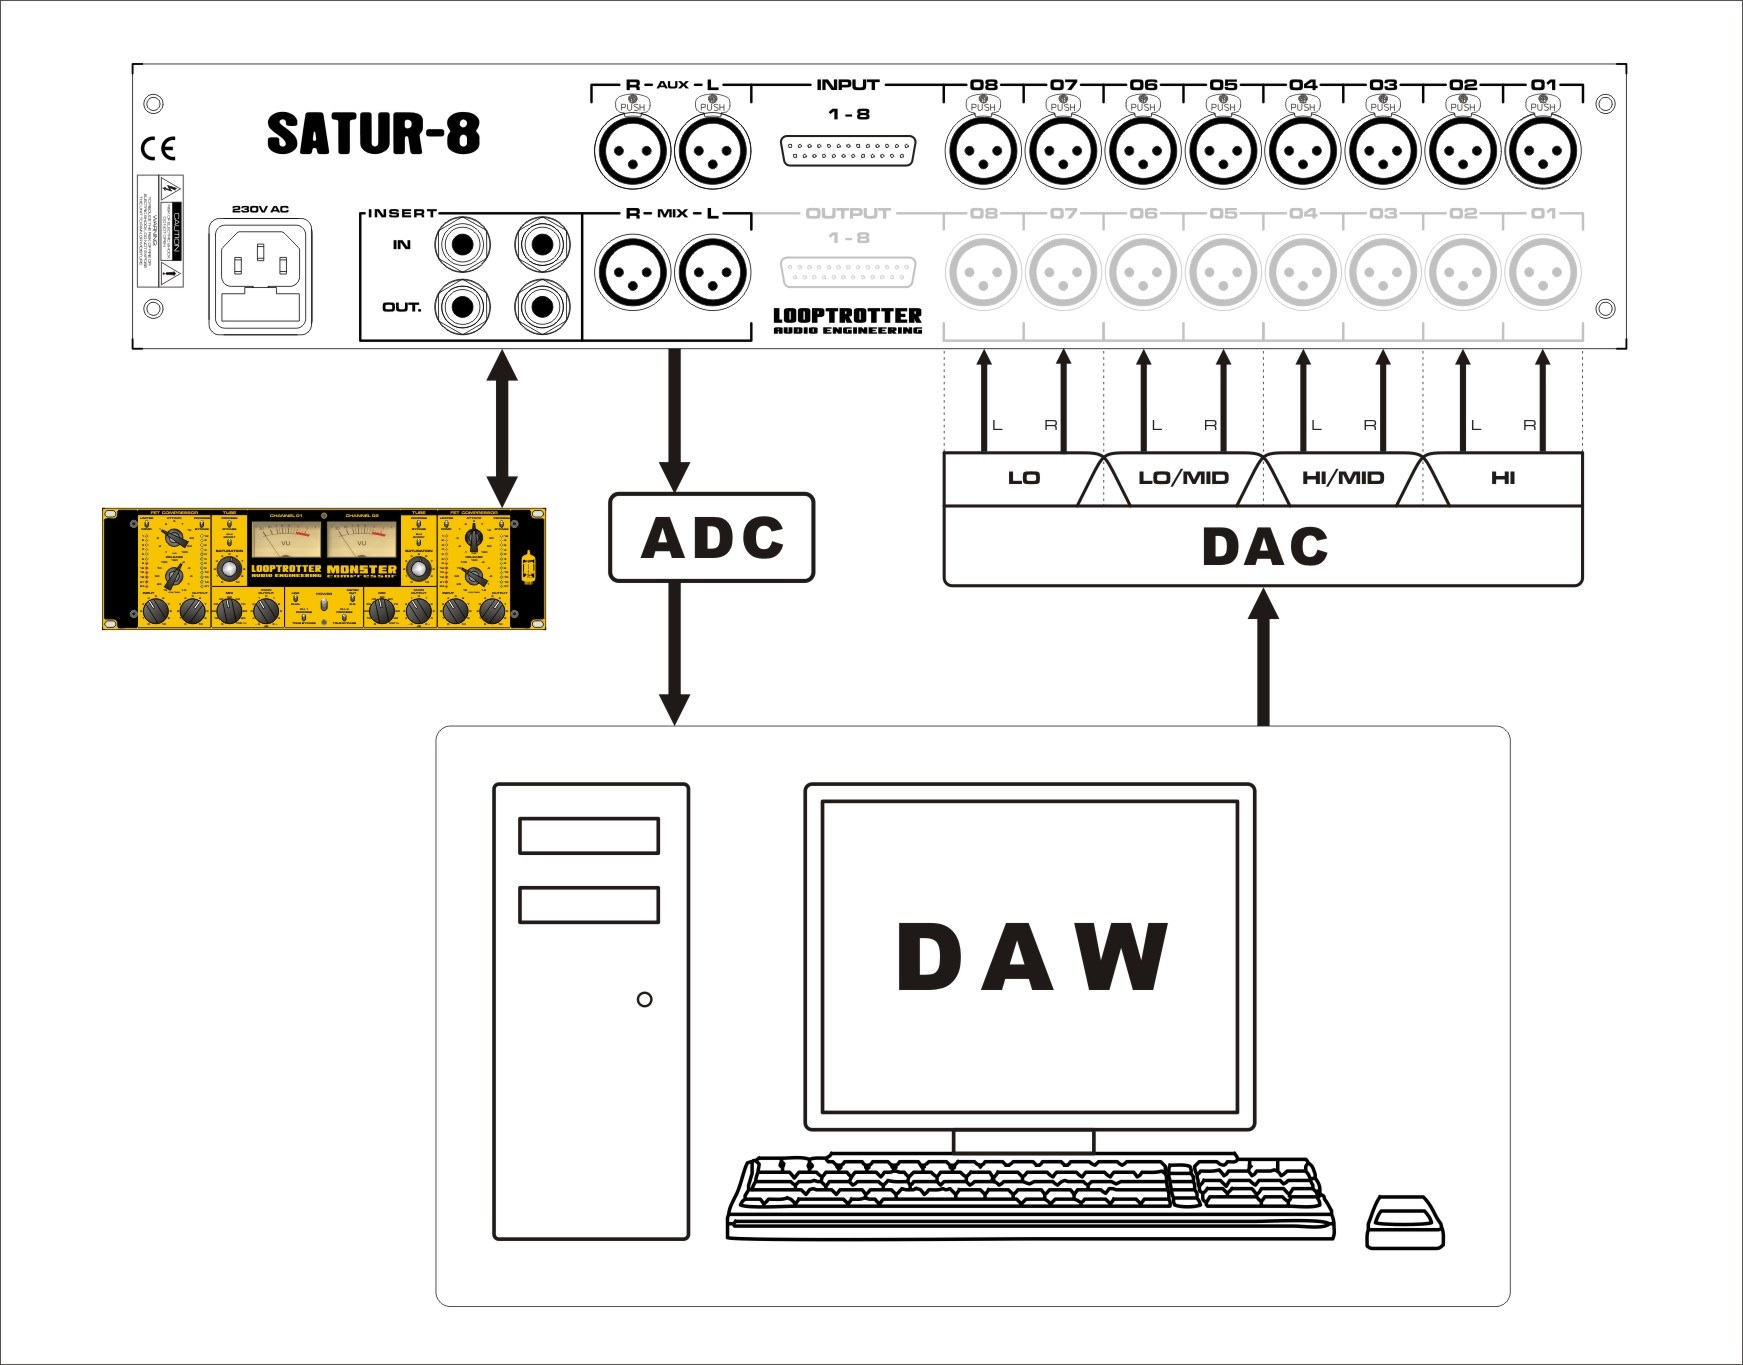 hight resolution of looptrotter satur 8 8ch summing mixer with saturation controls satur8 mastering